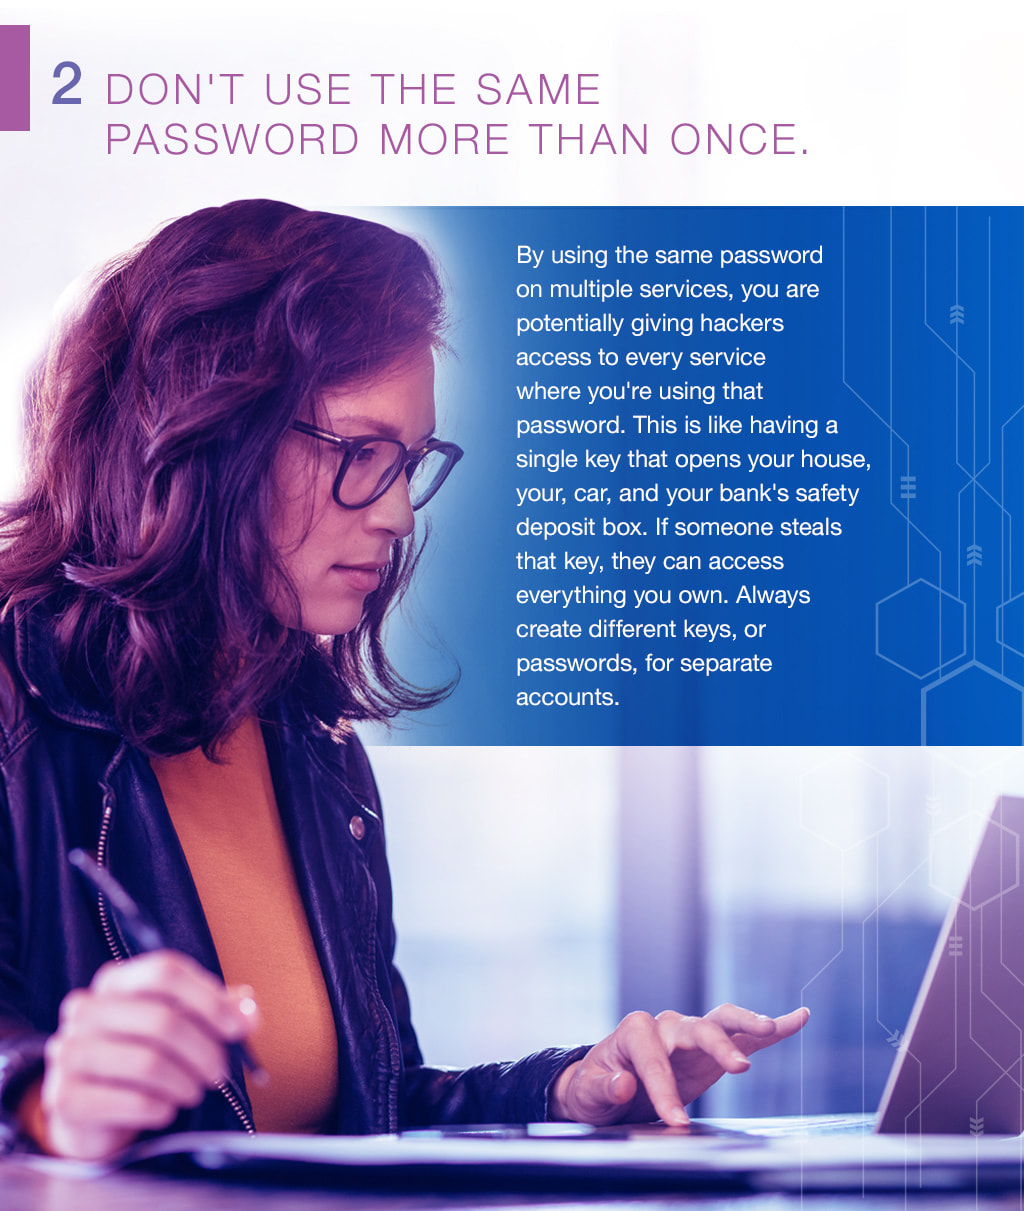 2.Don't use the same  password more than once. By using the same password on multiple services, you are potentially giving hackers access to every service where you're using that password. This is like having a single key that opens your house, your, car, and your bank's safety deposit box. If someone steals that key, they can access everything you own. Always create different keys, or passwords, for separate accounts.